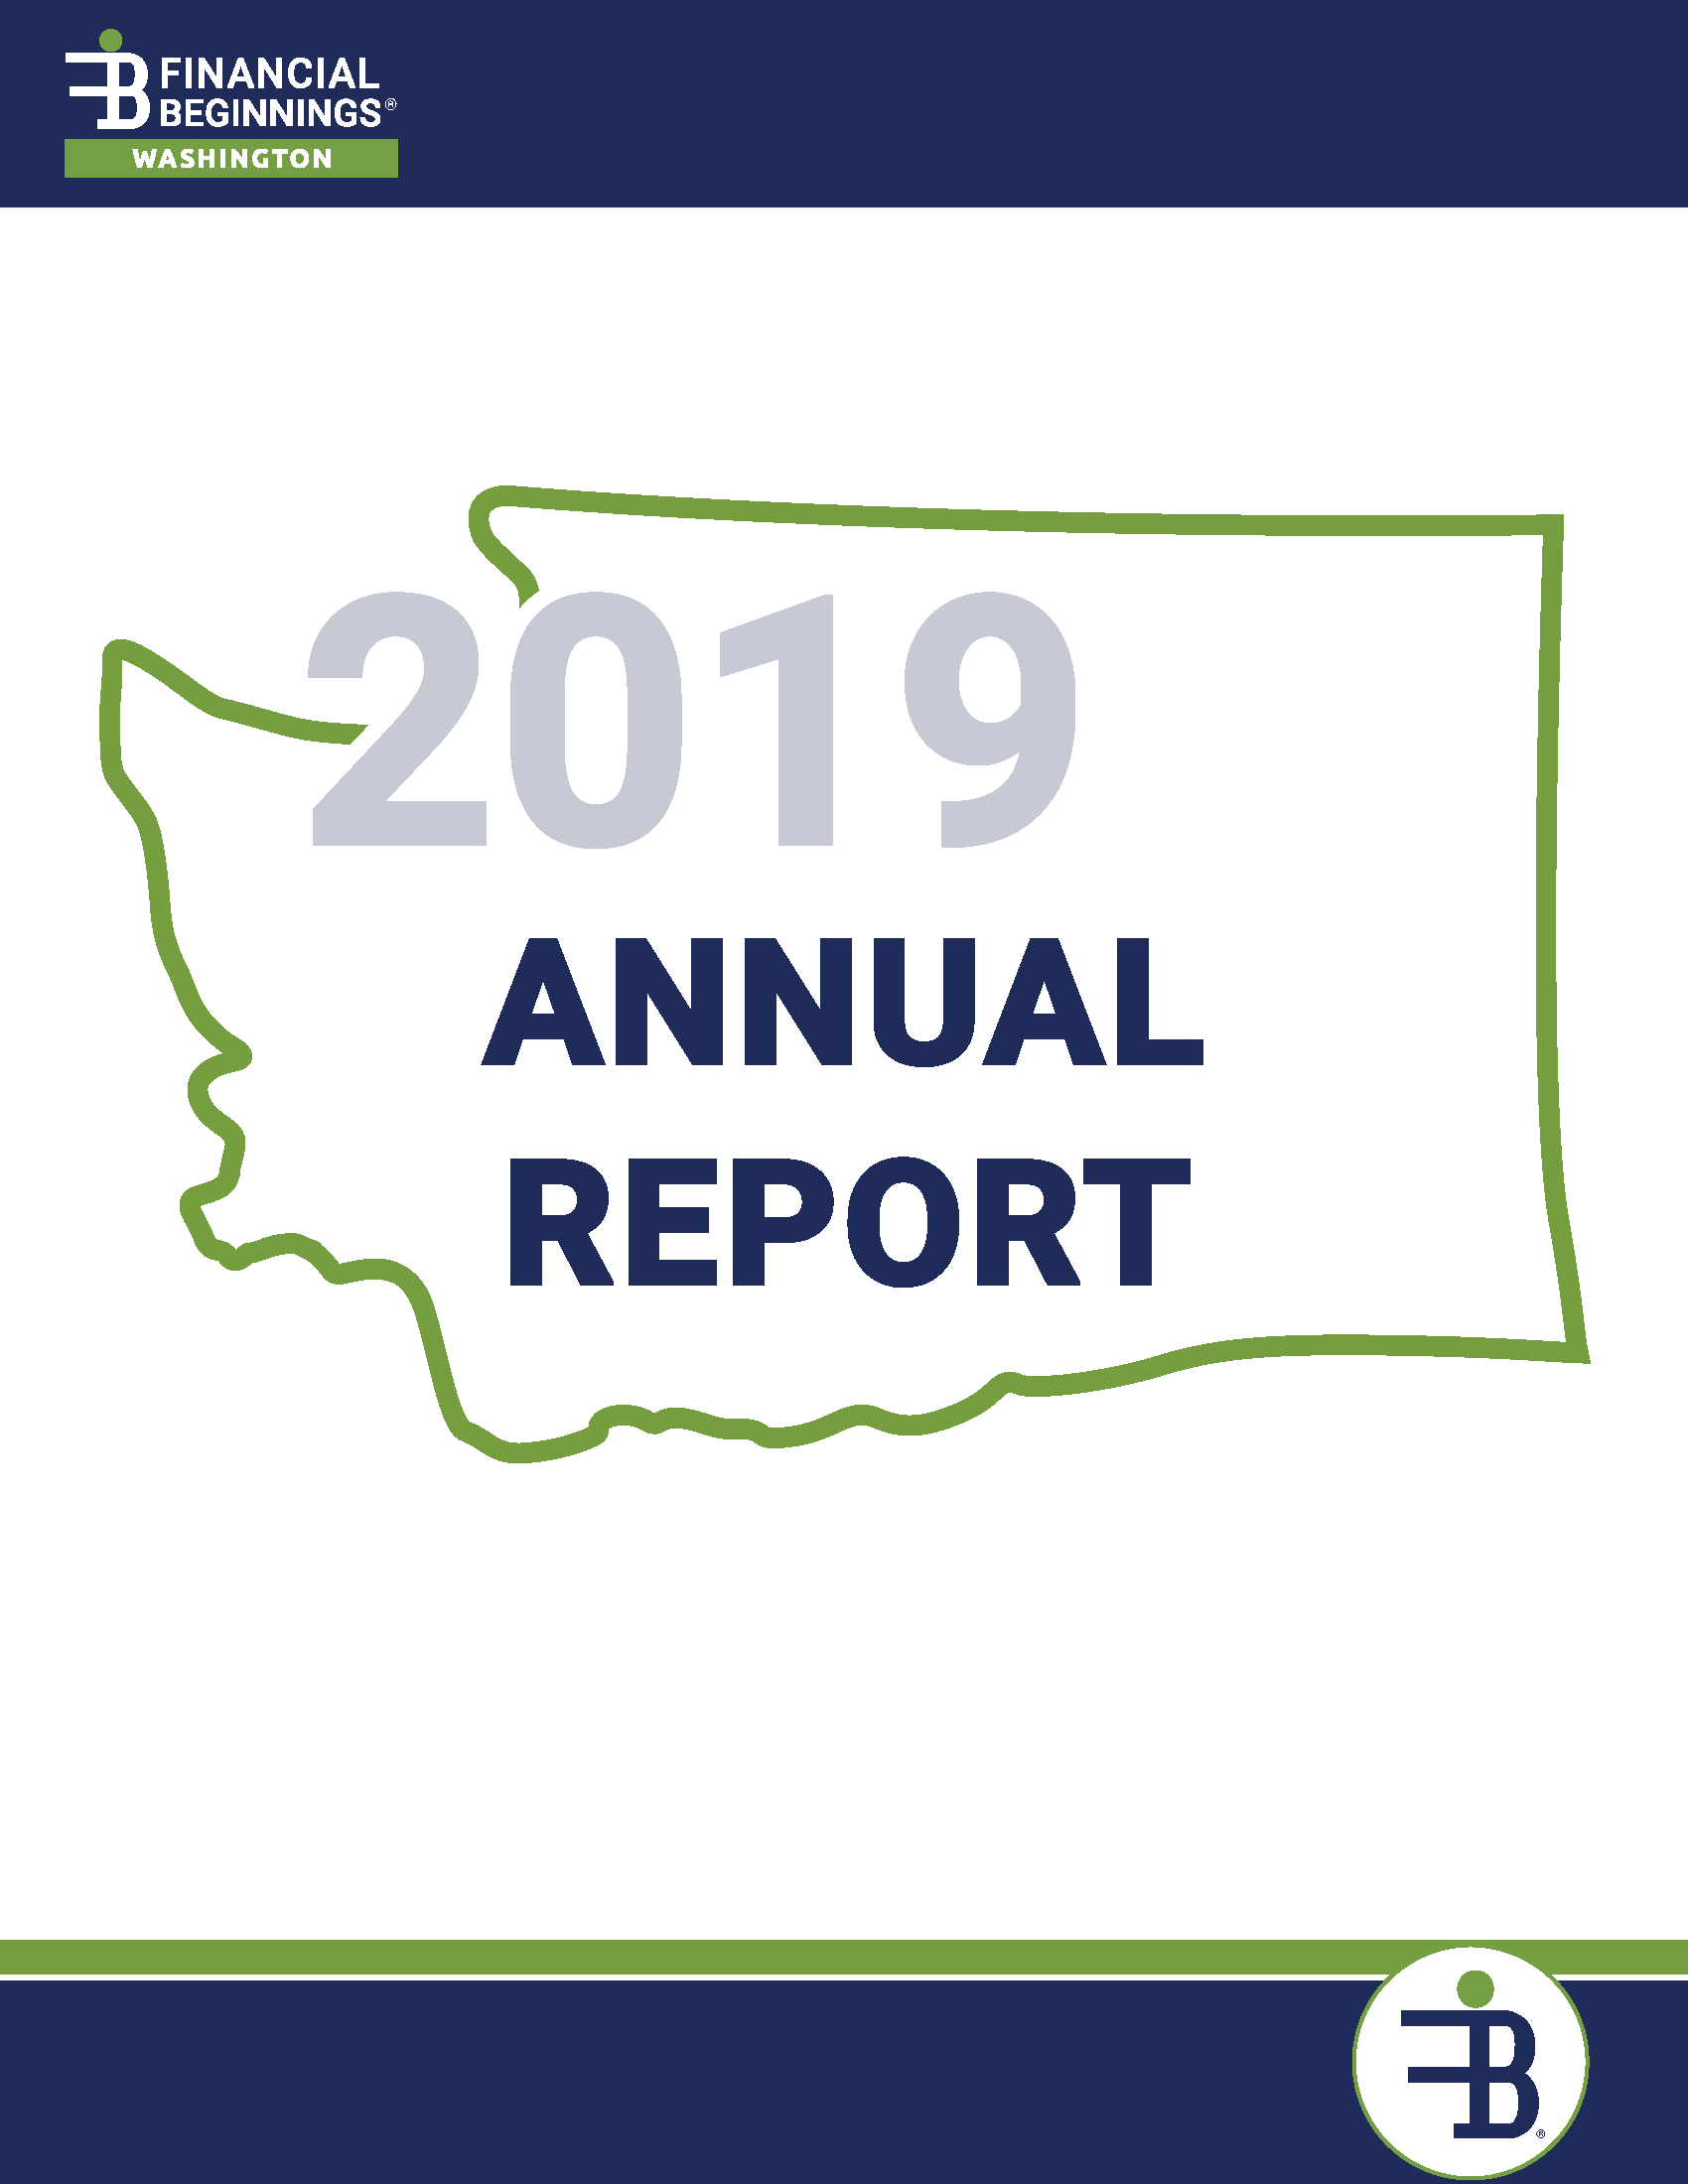 2018 - 2019 Financial Beginnings Washington Annual Report